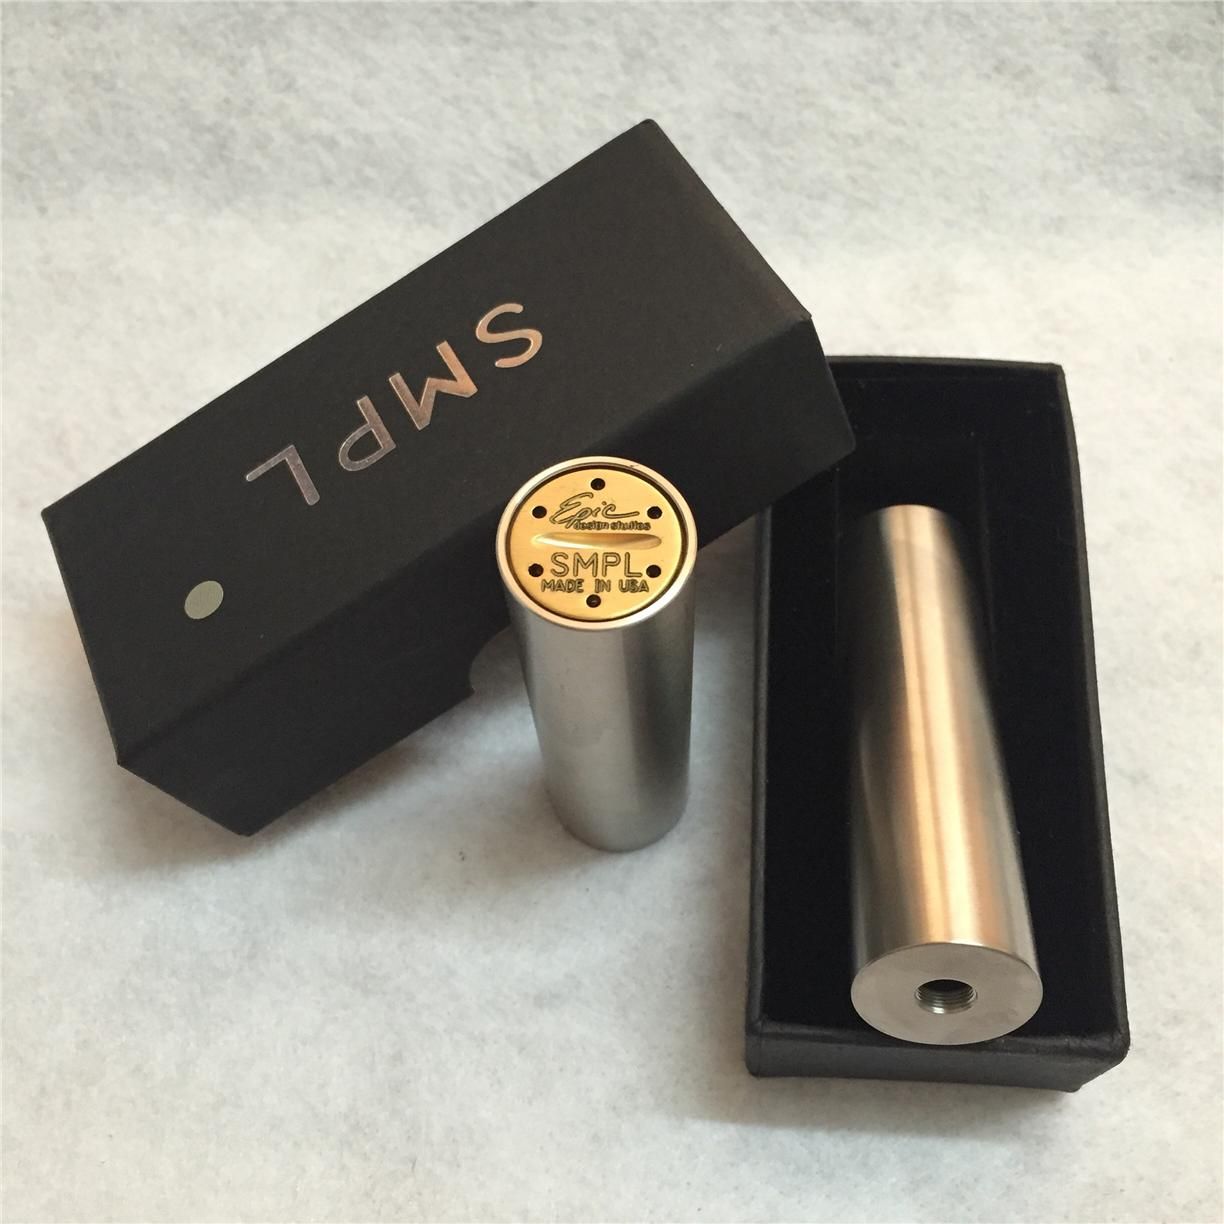 smpl-mech-mod-stainless-steel-stainless-